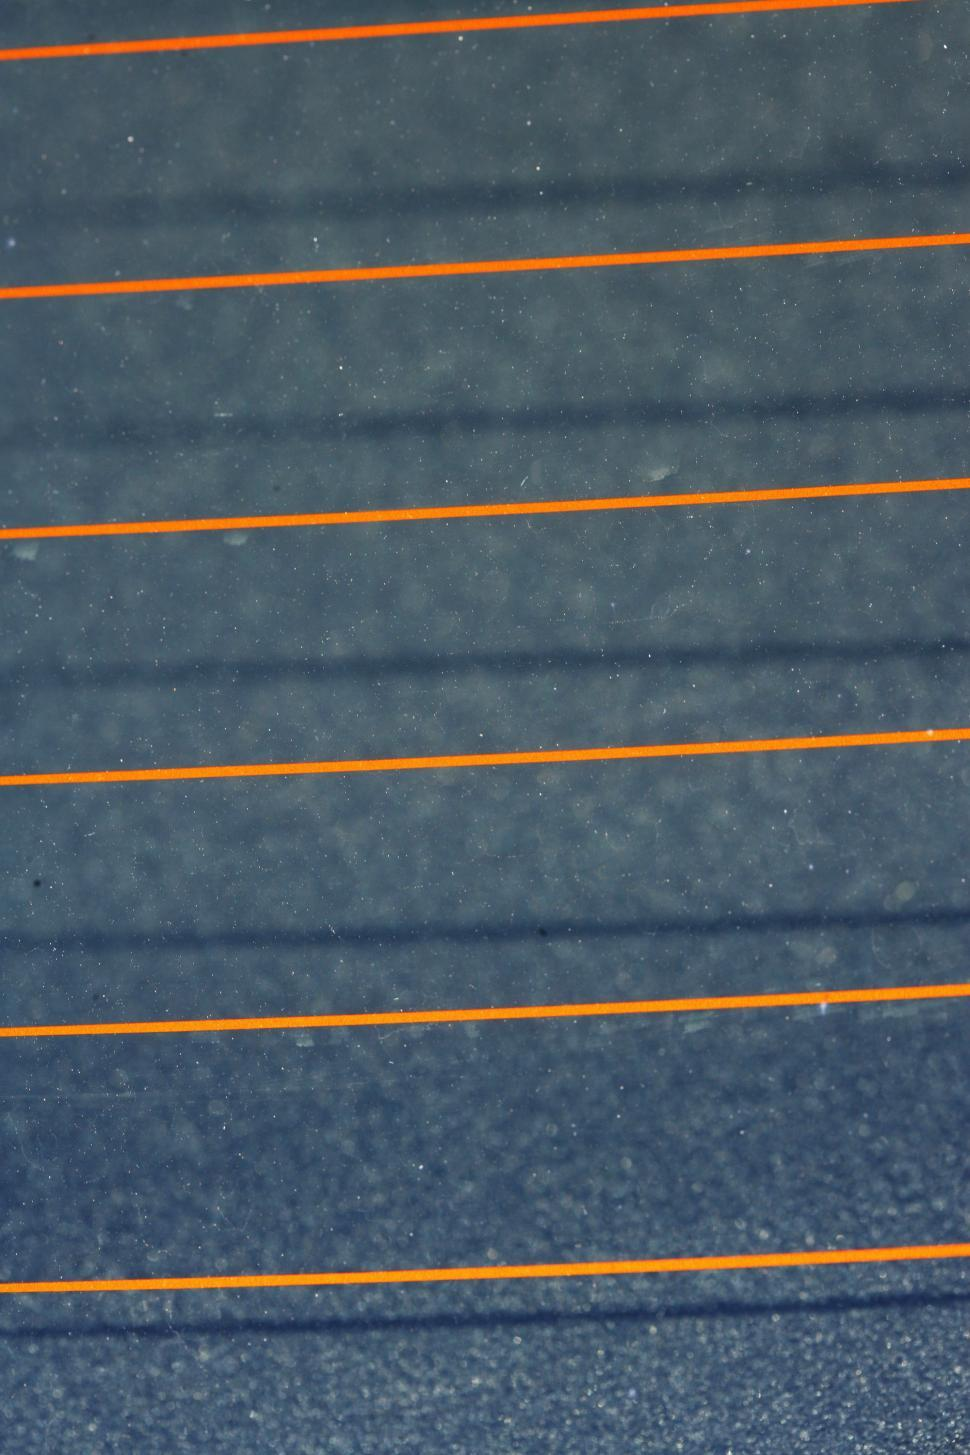 Download Free Stock HD Photo of Orange Lines Online